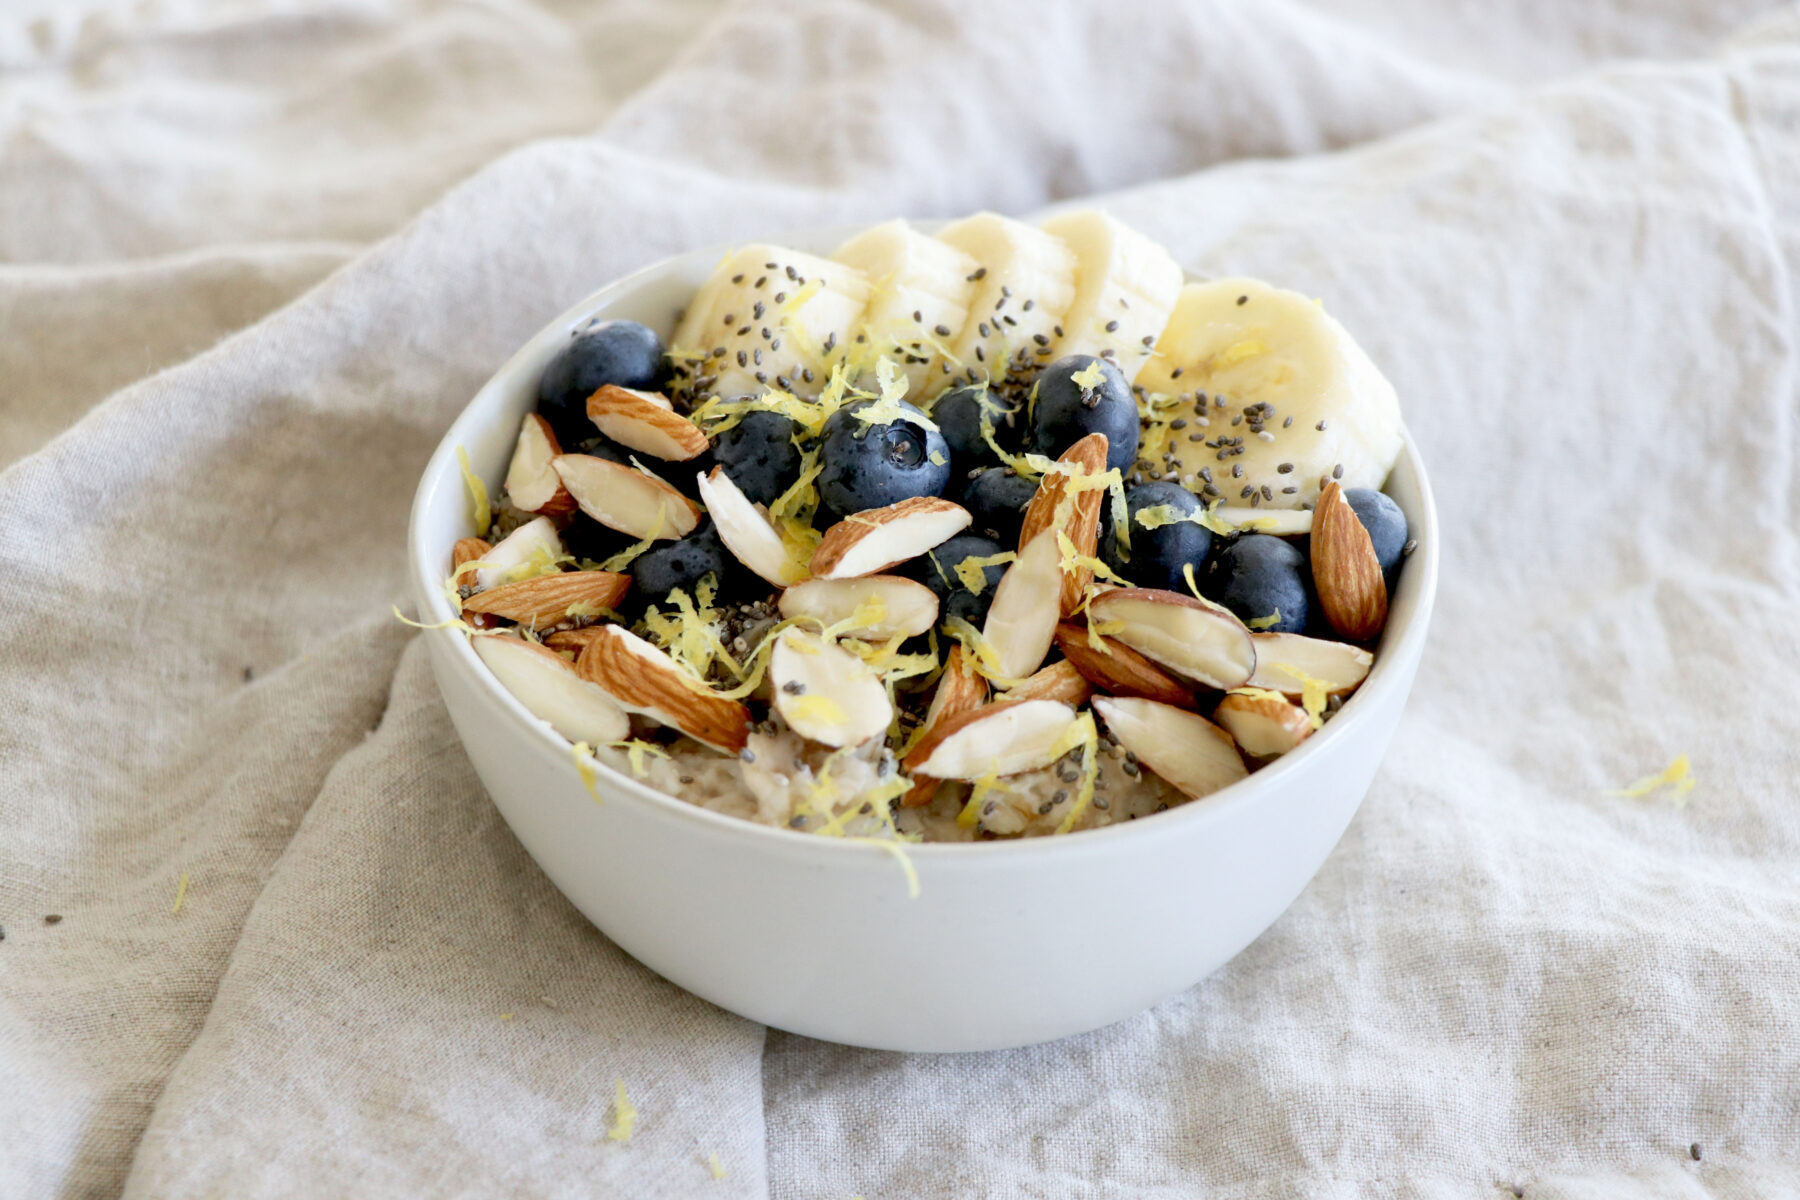 Bowl of oatmeal topped with banana, blueberries and almonds